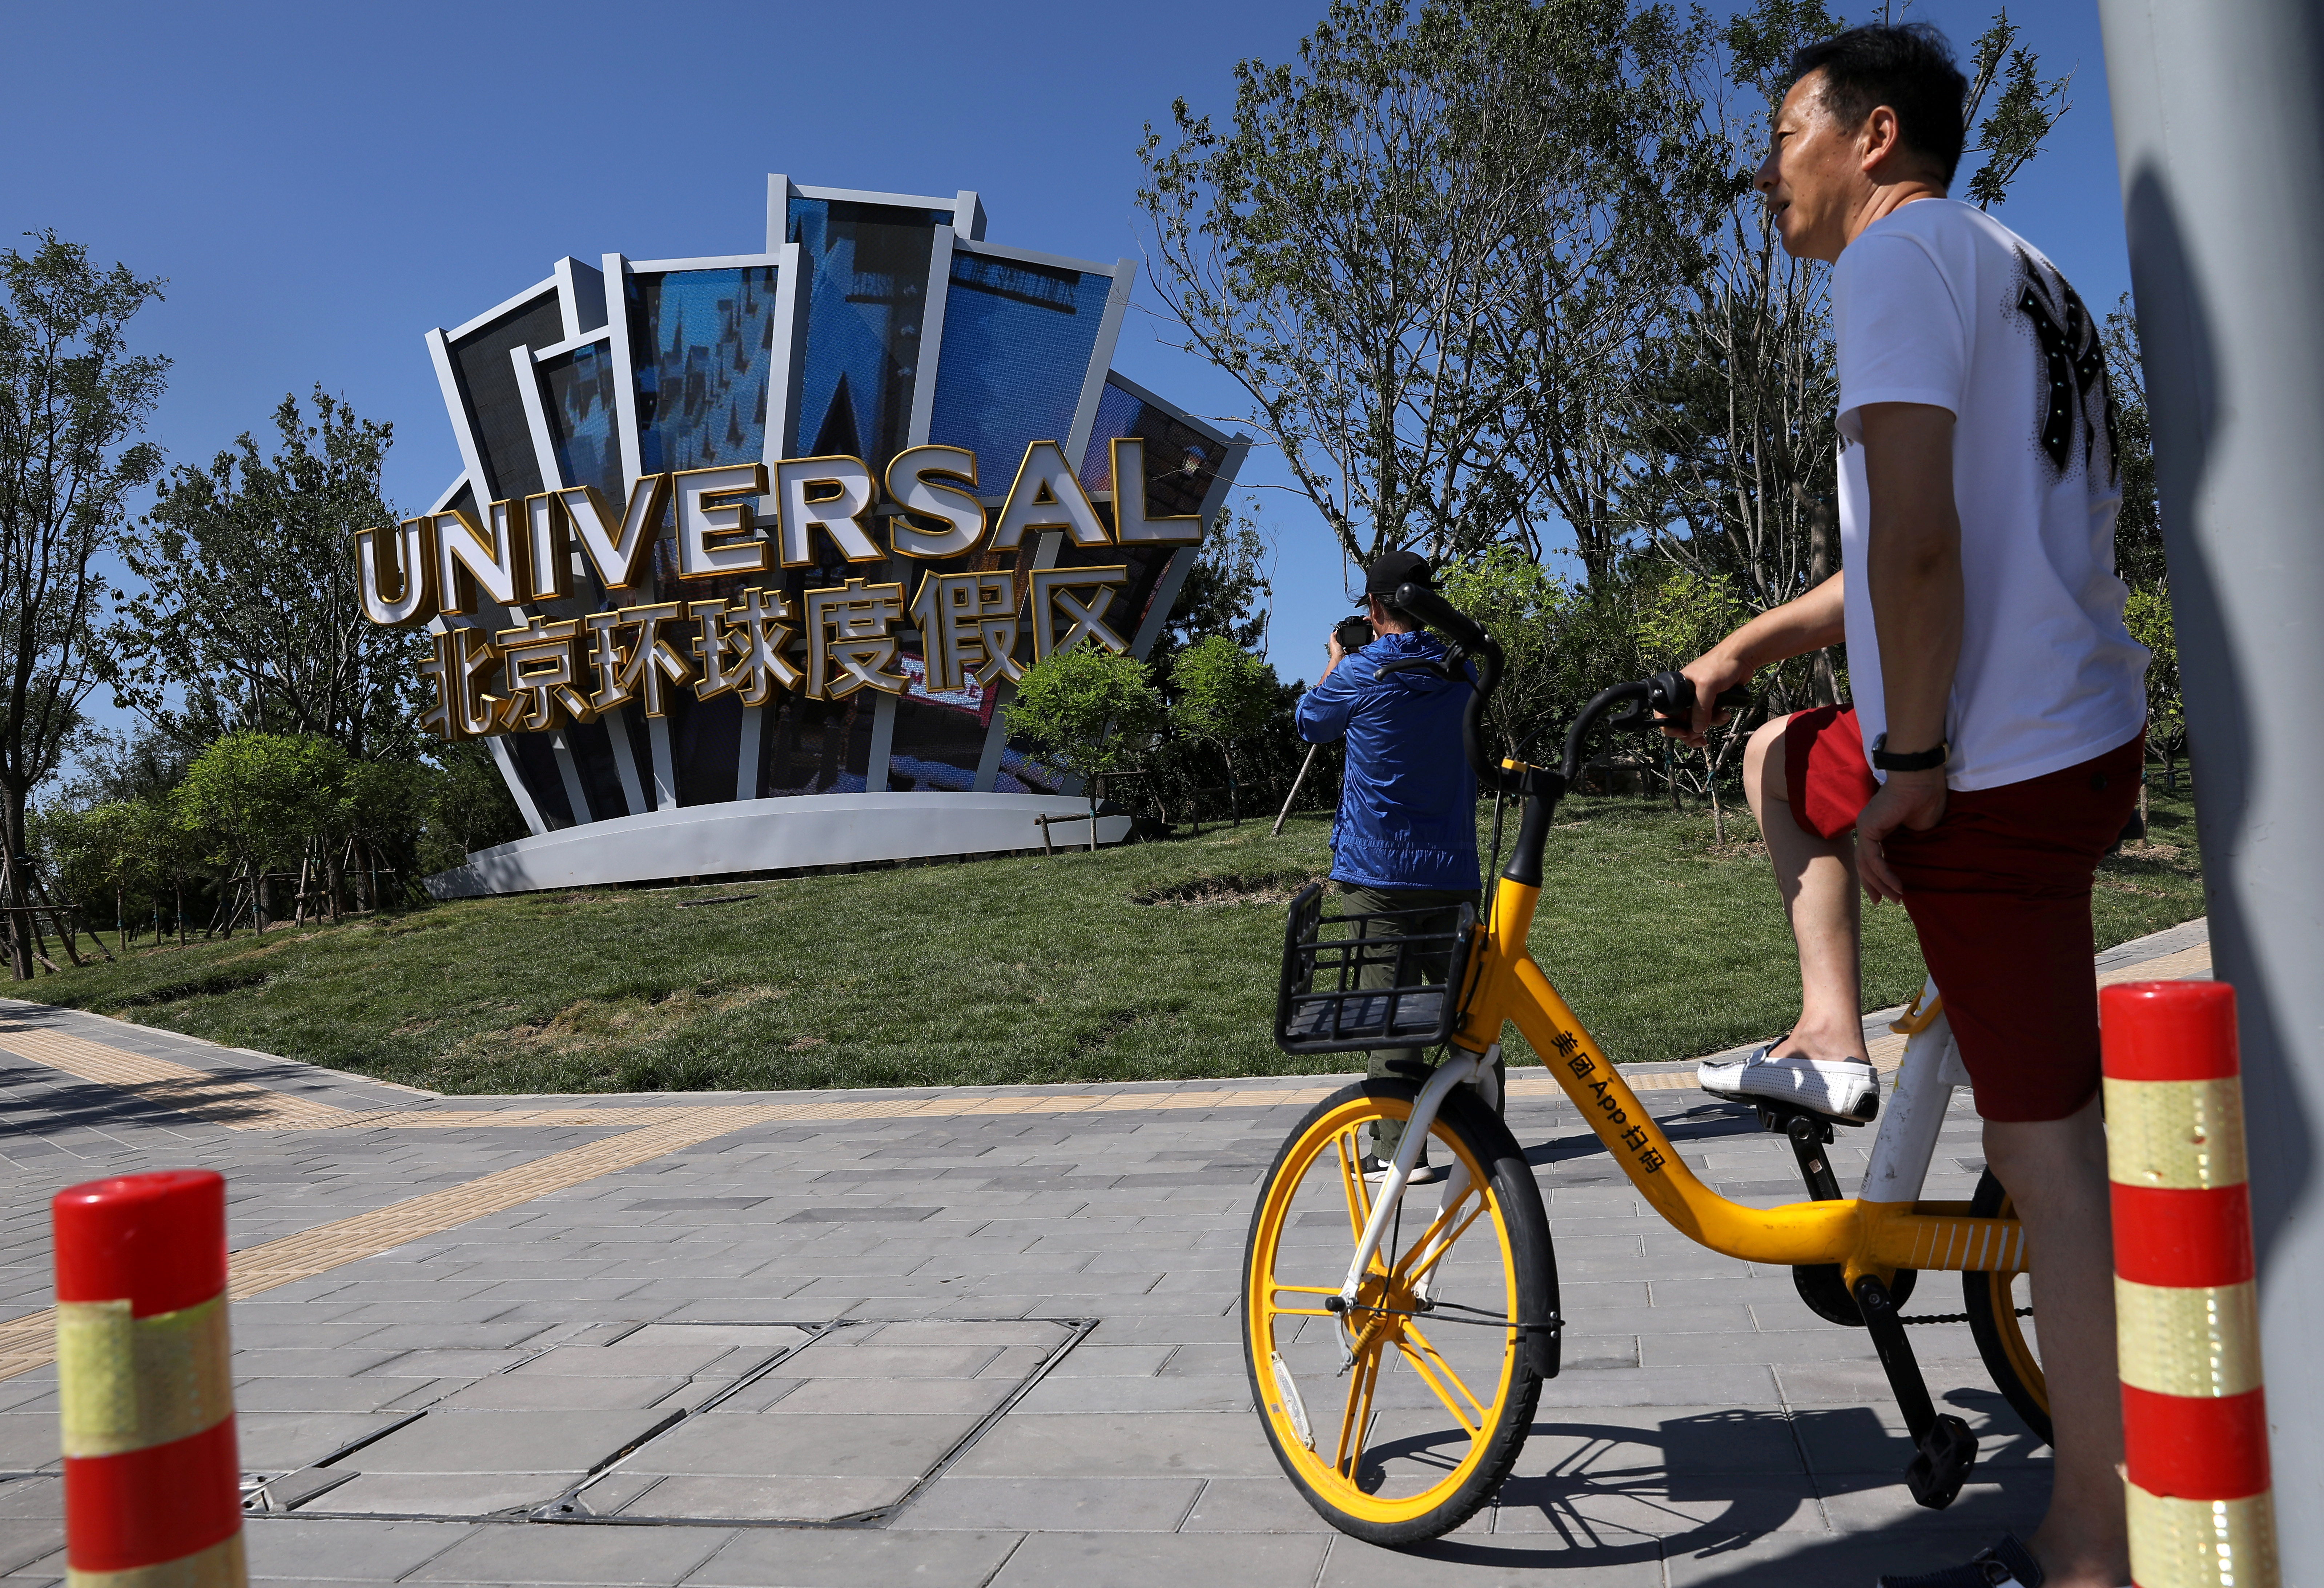 A man rides a bike of a bike-sharing service near a giant sign Universal Beijing Resort, ahead of its opening, in Beijing, China August 27, 2021. REUTERS/Tingshu Wang/File Photo